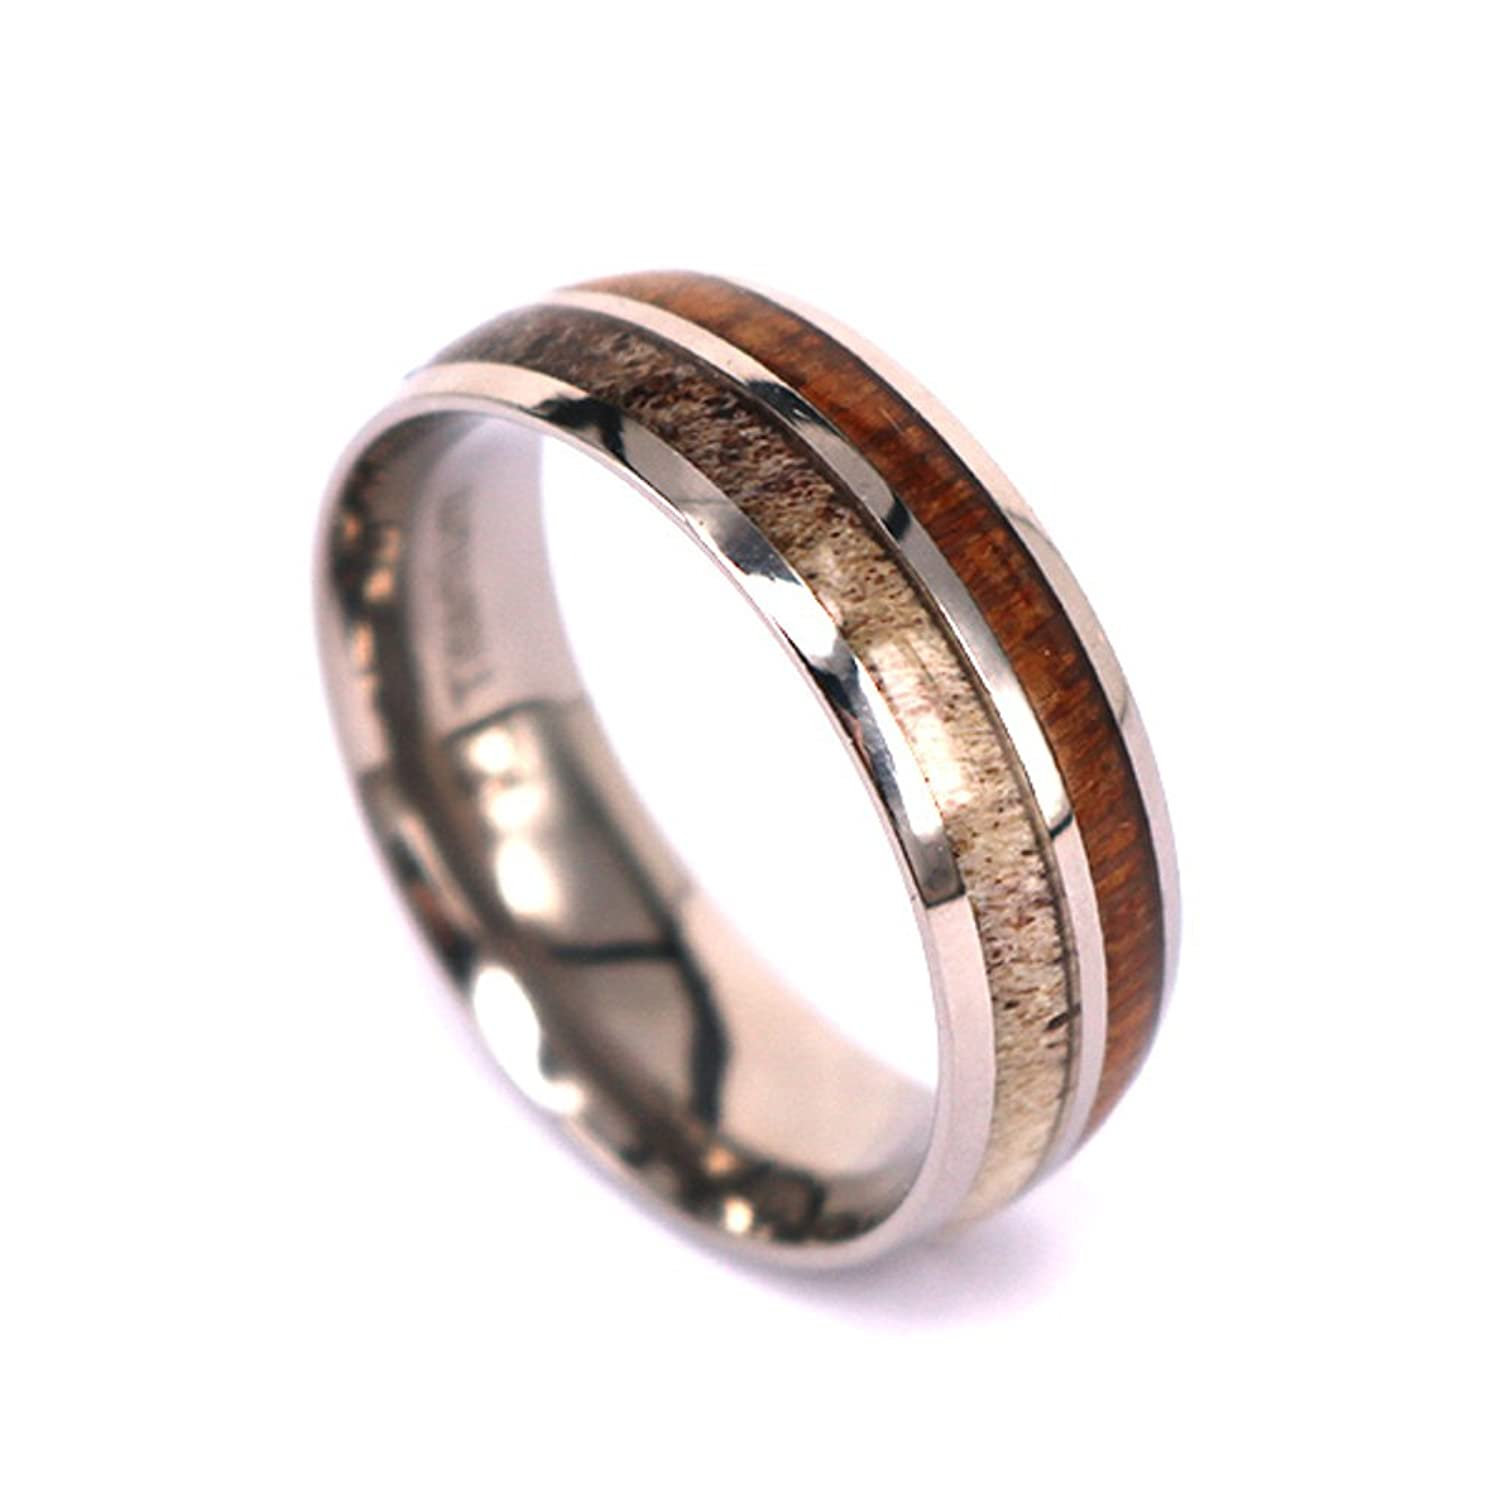 elegant mens inlay elk gallery rings deer antler koa within com with ring band wood wedding unisex matvuk natural